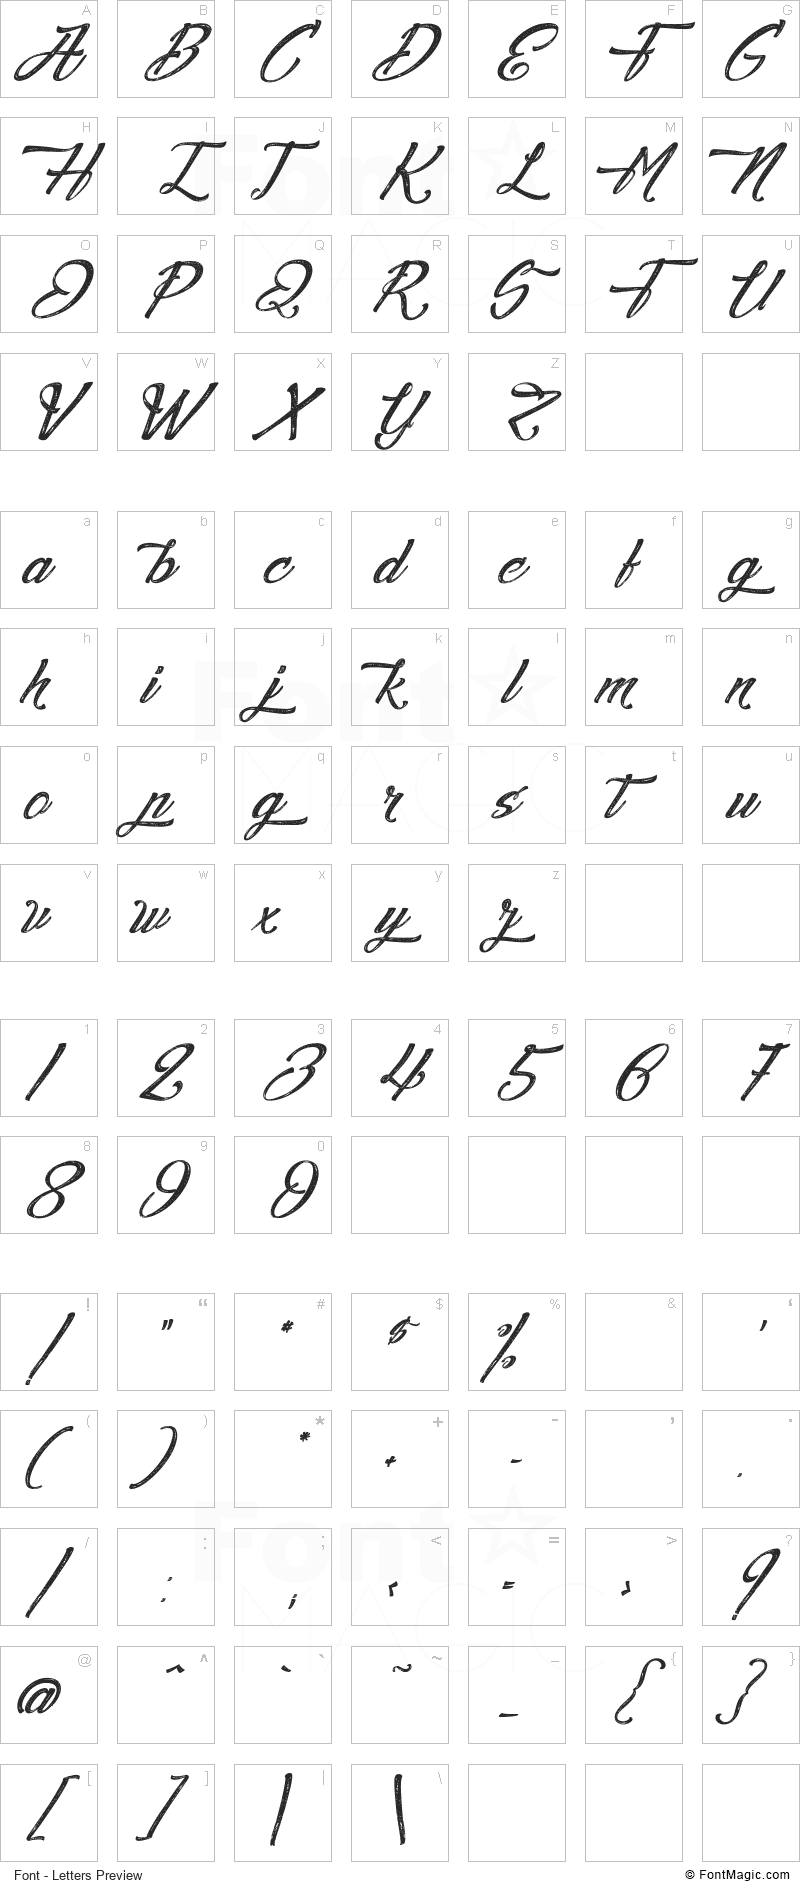 Agua de Jamaica Font - All Latters Preview Chart